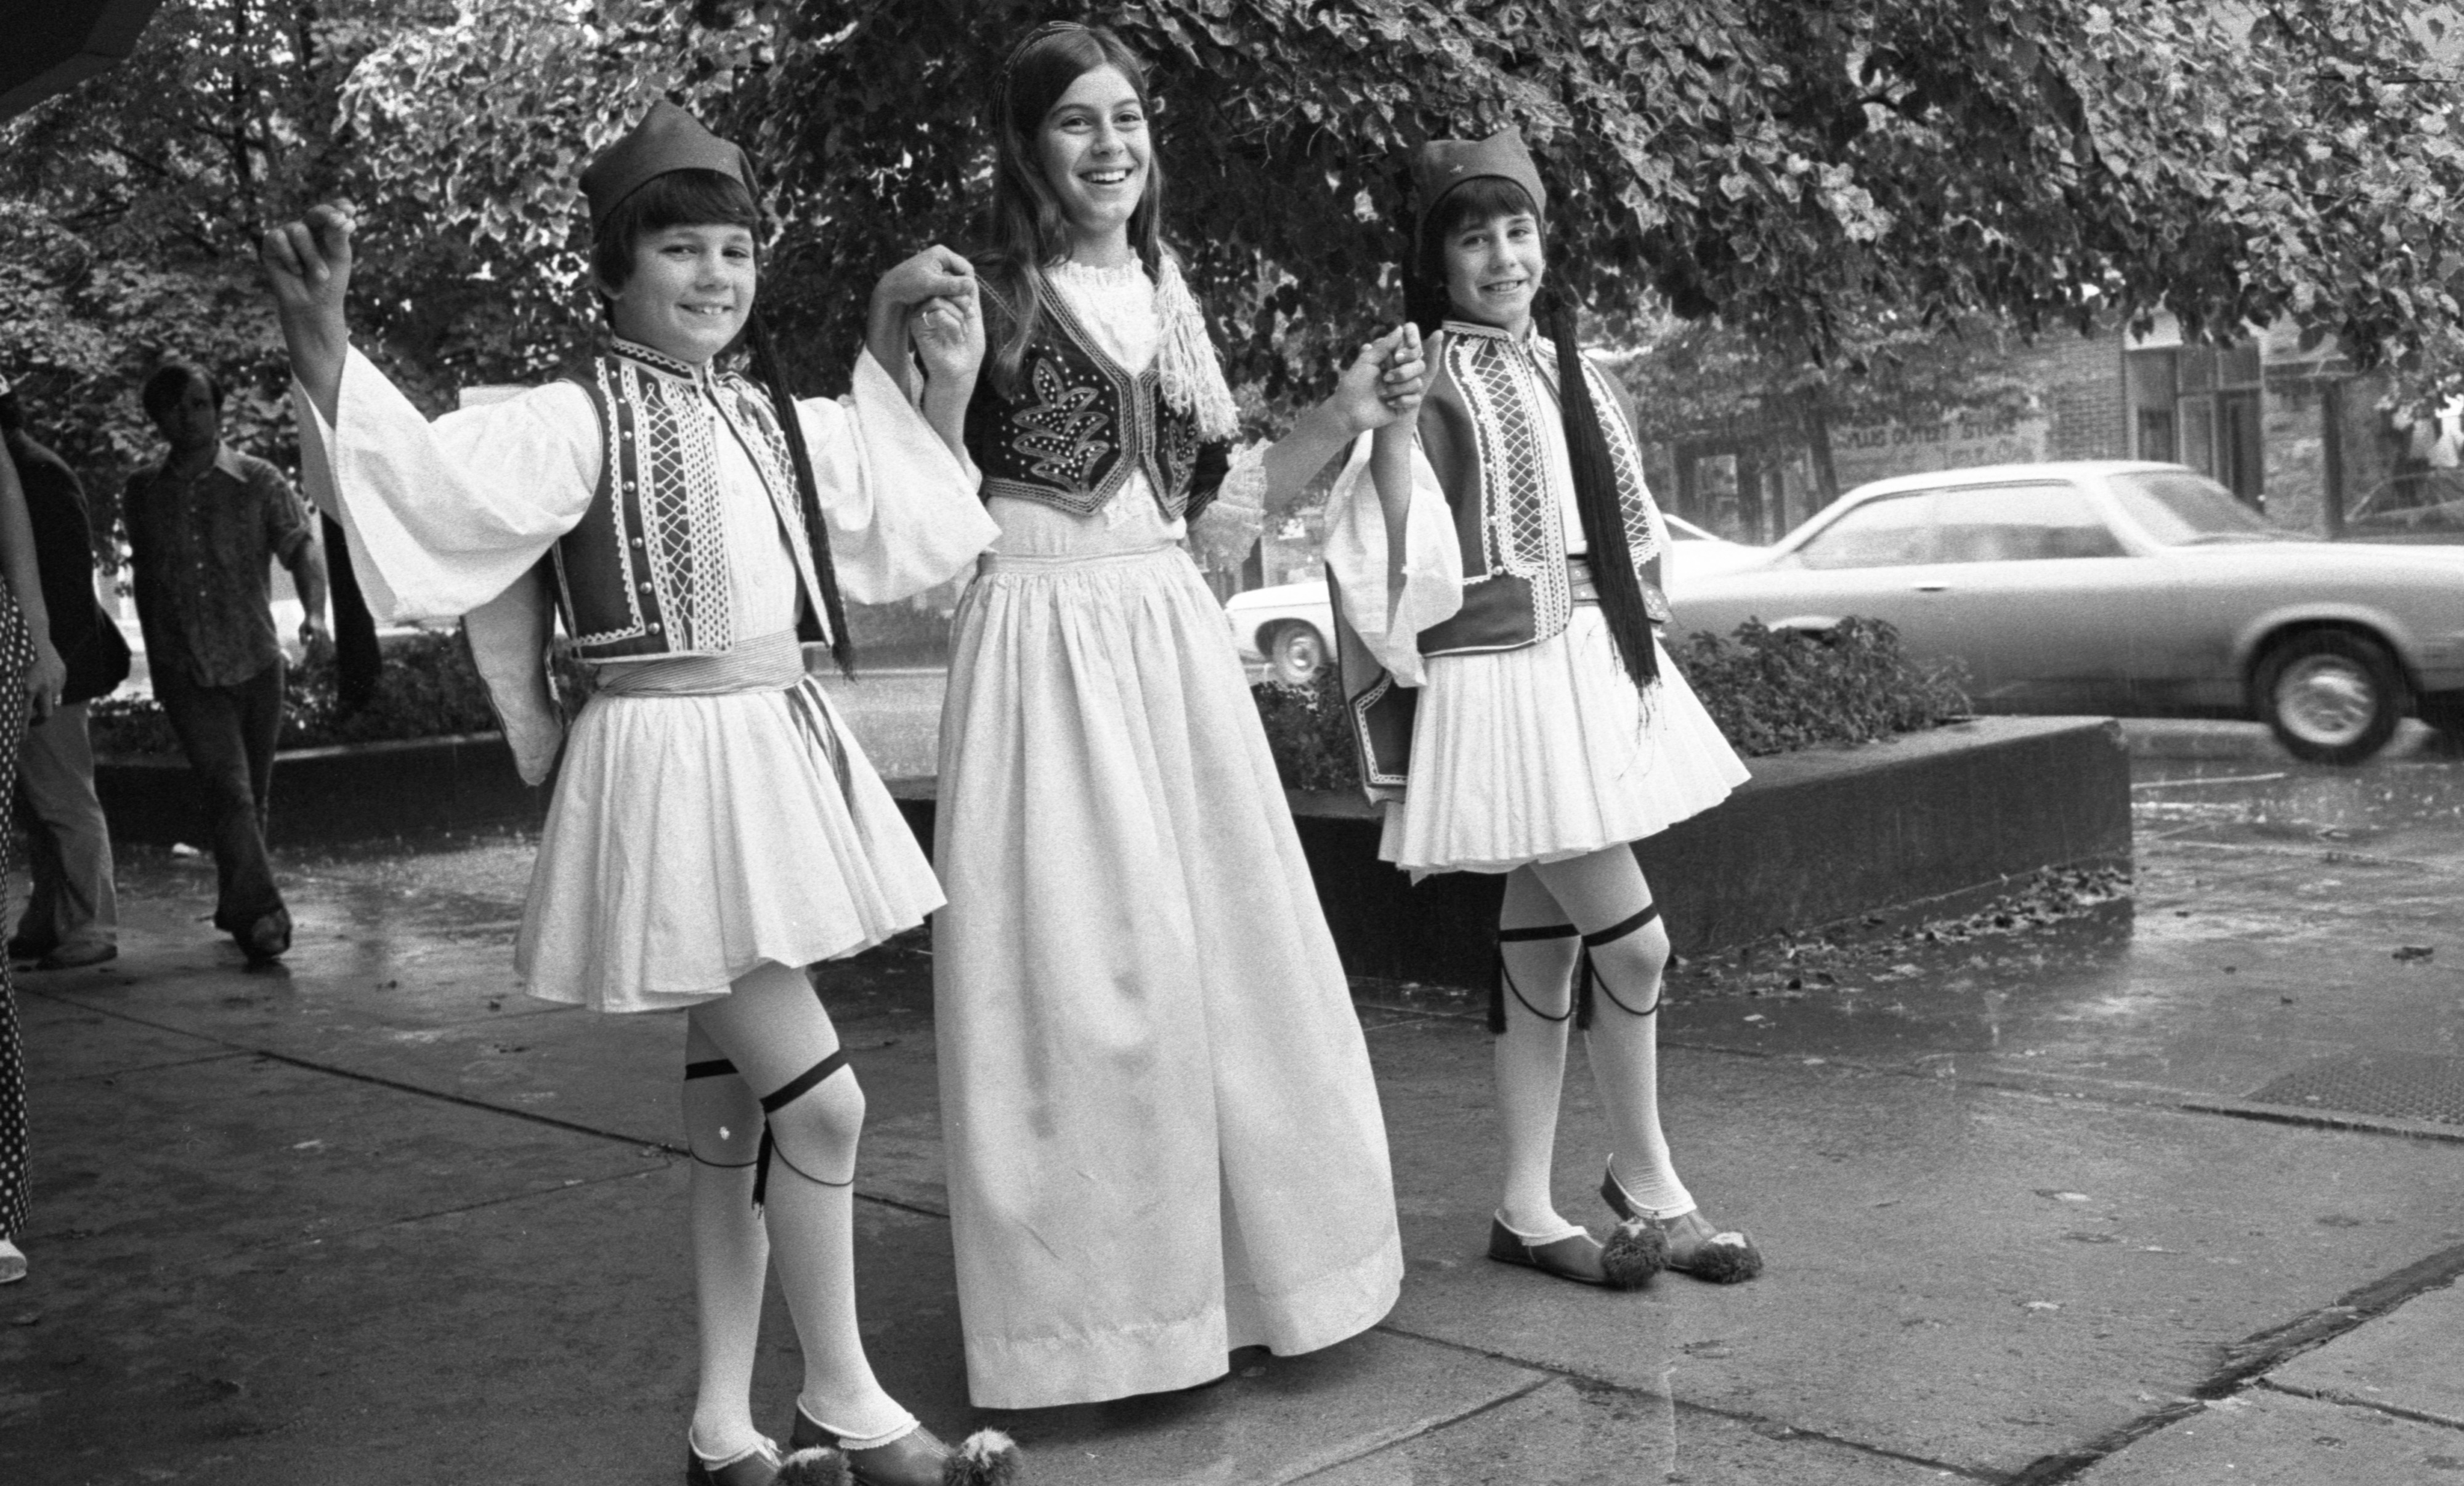 Hellenic Community Dancers Prepare For The Ann Arbor Ethnic Fair, September 1975 image